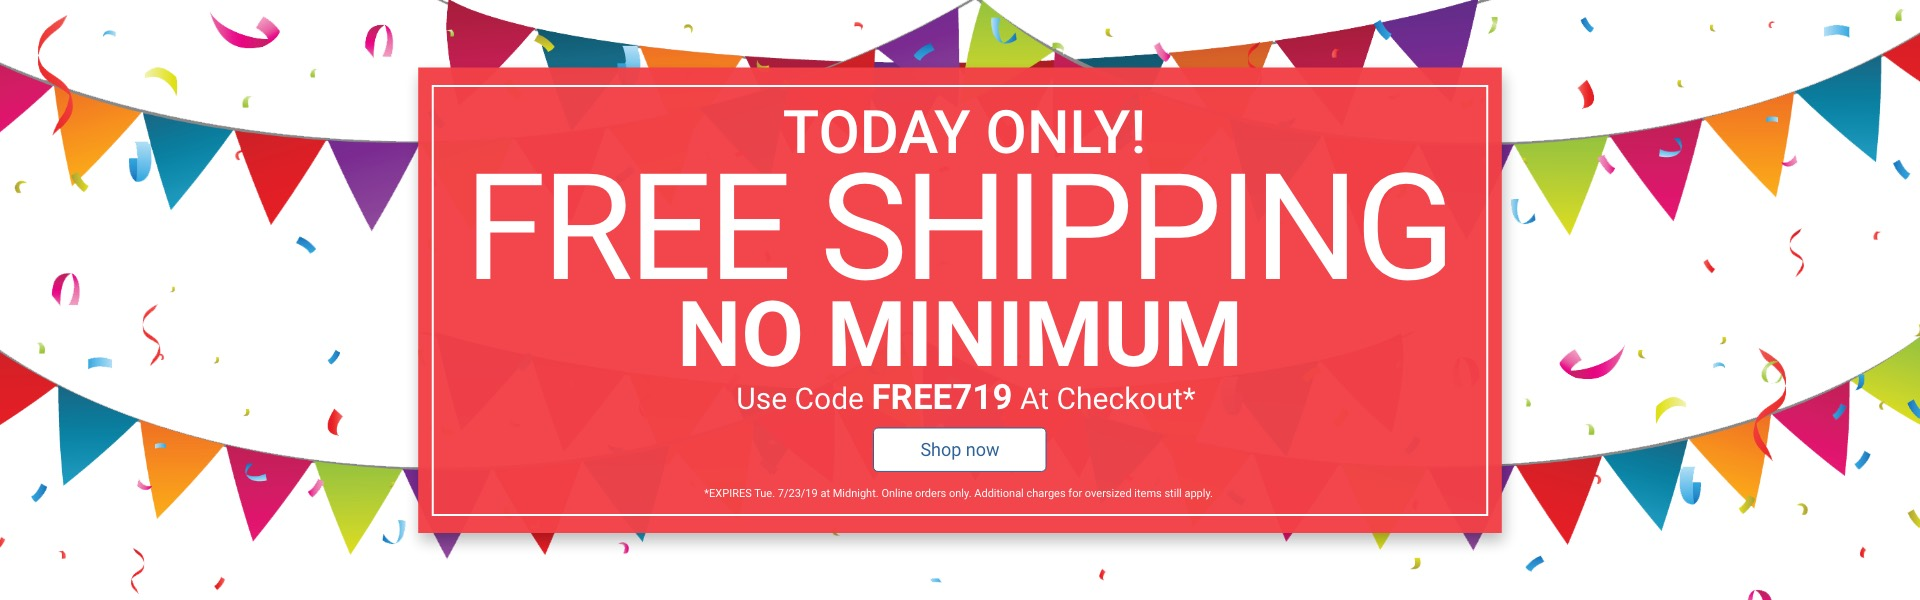 Today Only! Free Shipping No Minimum Use Code FREE719 At Checkout Shop Now